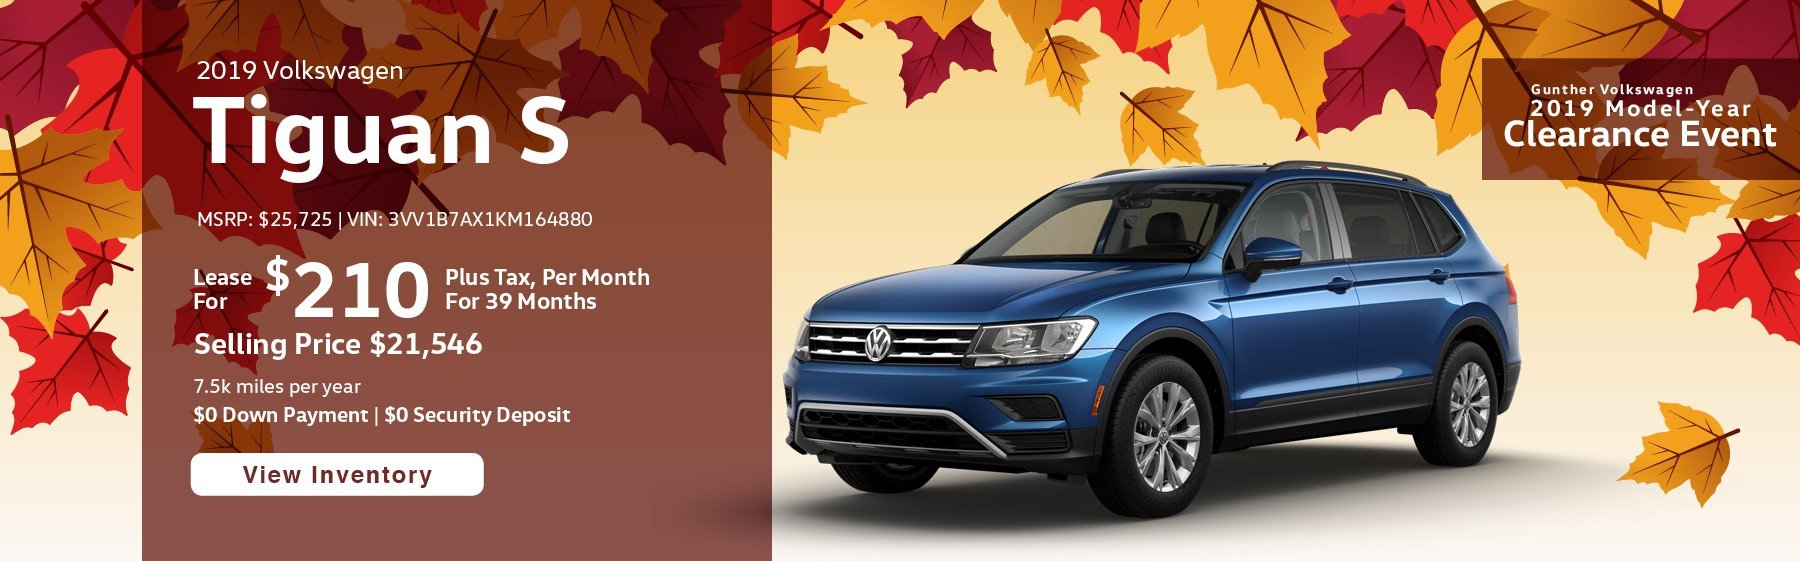 Lease the 2019 Tiguan S for $210 per month, plus tax for 39 months.